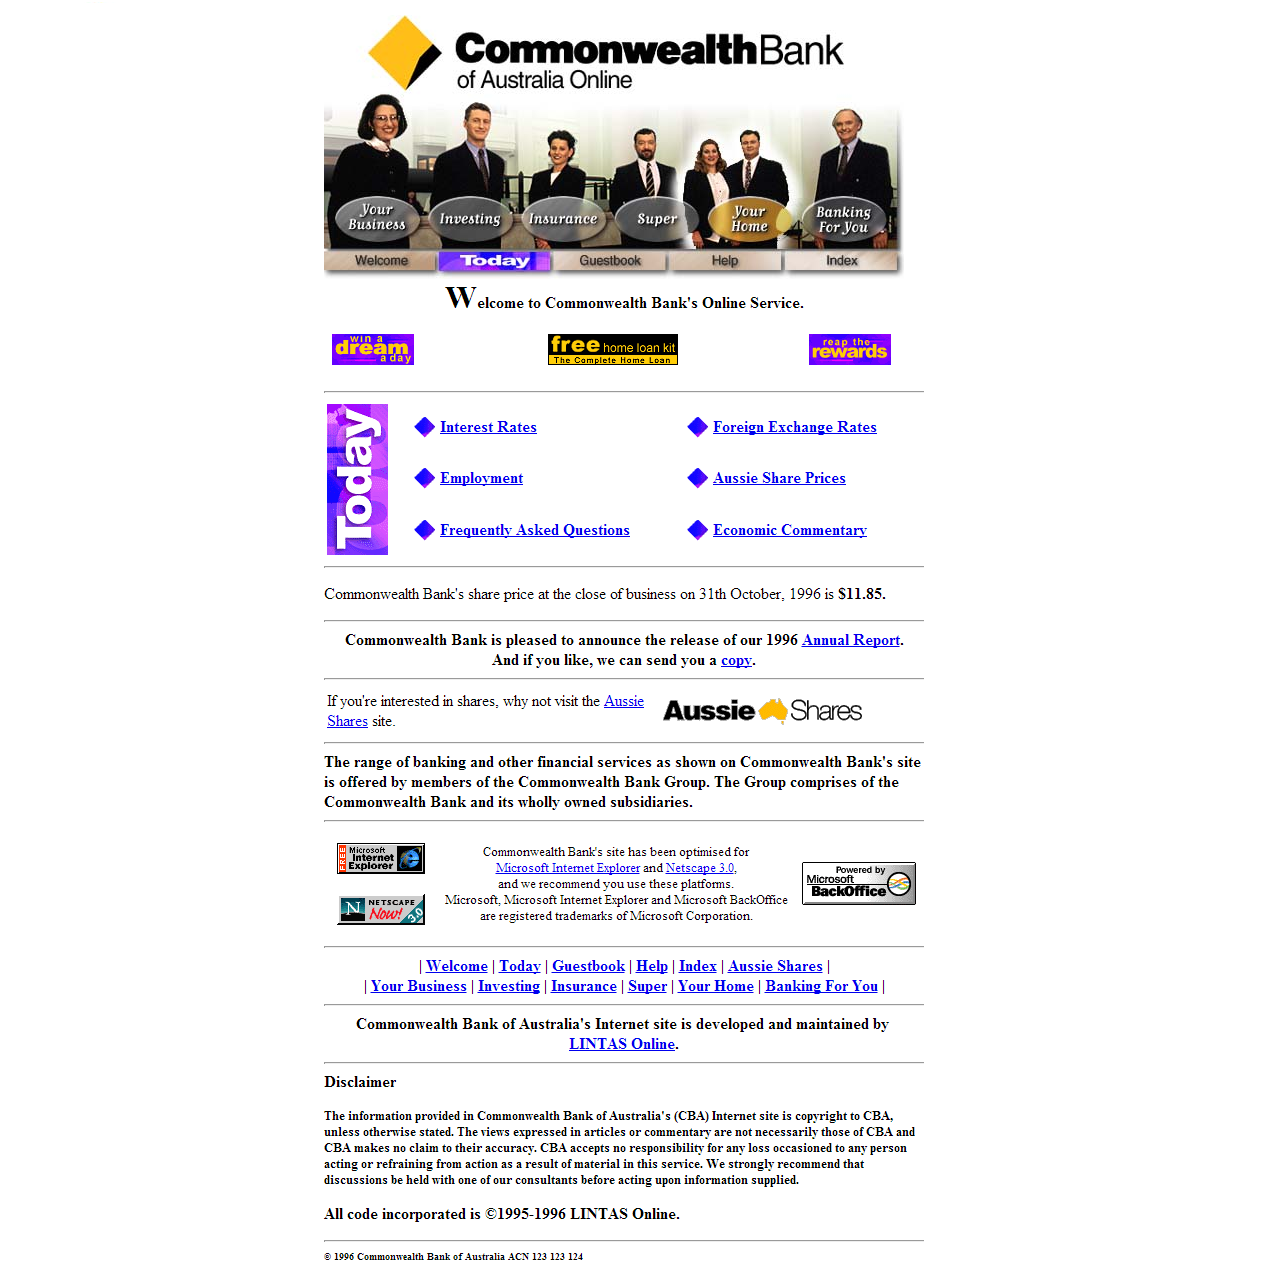 Commonwealth Bank's First Website